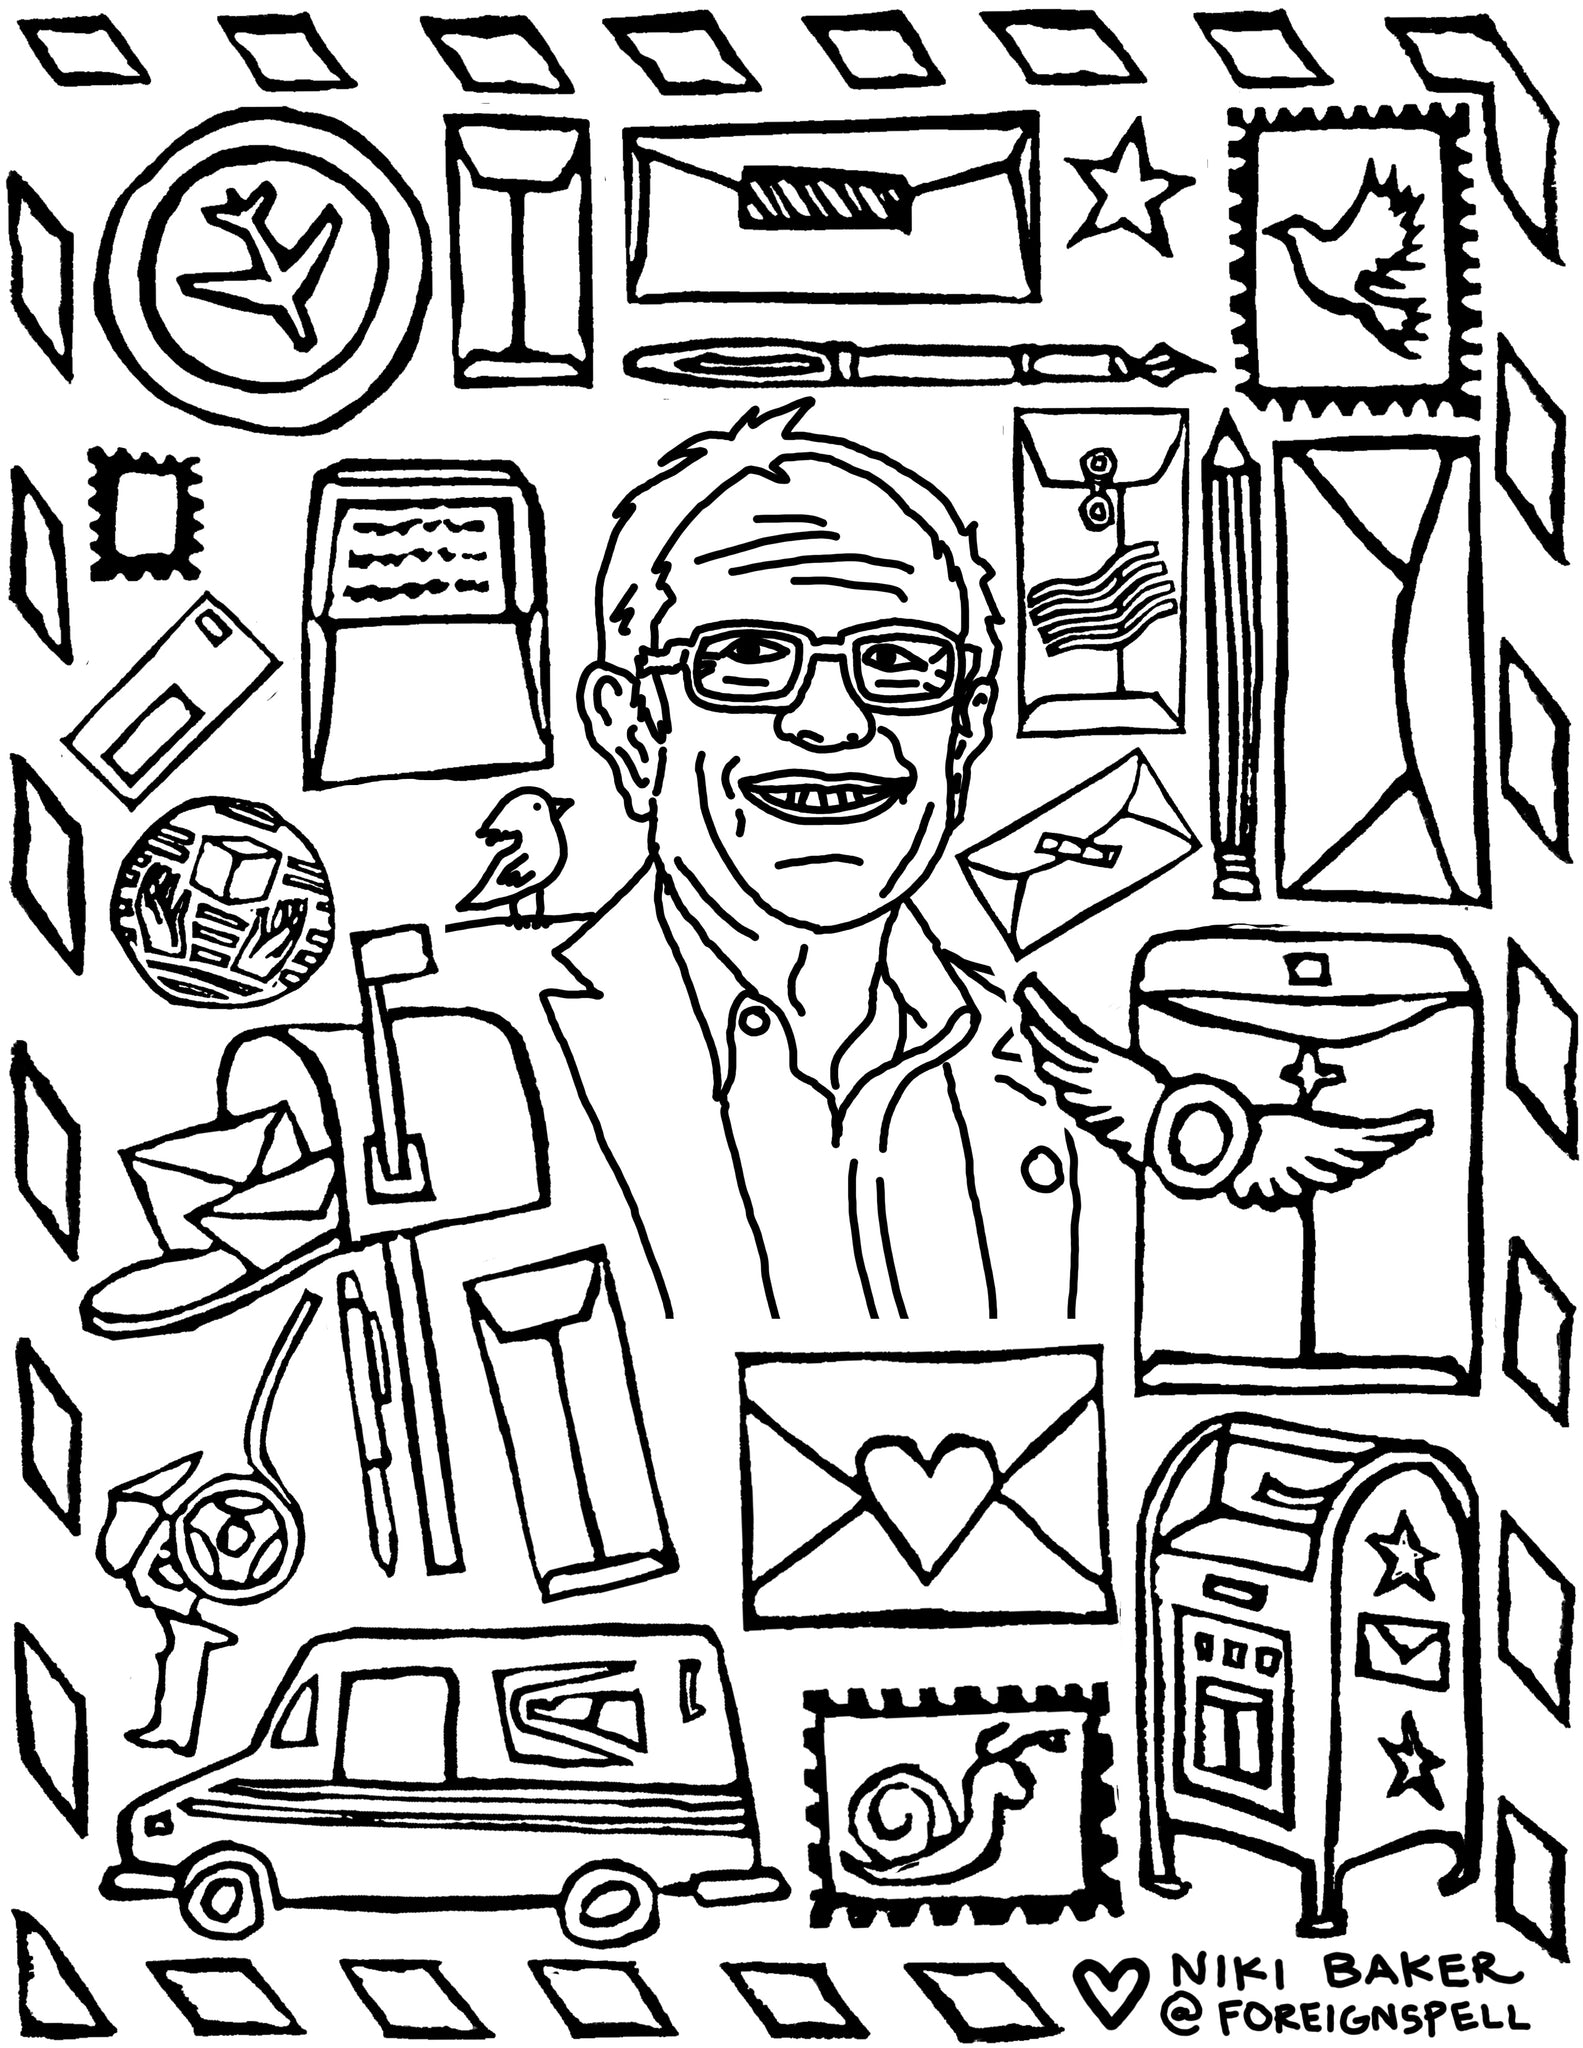 Bernie Sanders Self-Care Activity Book Coloring Page